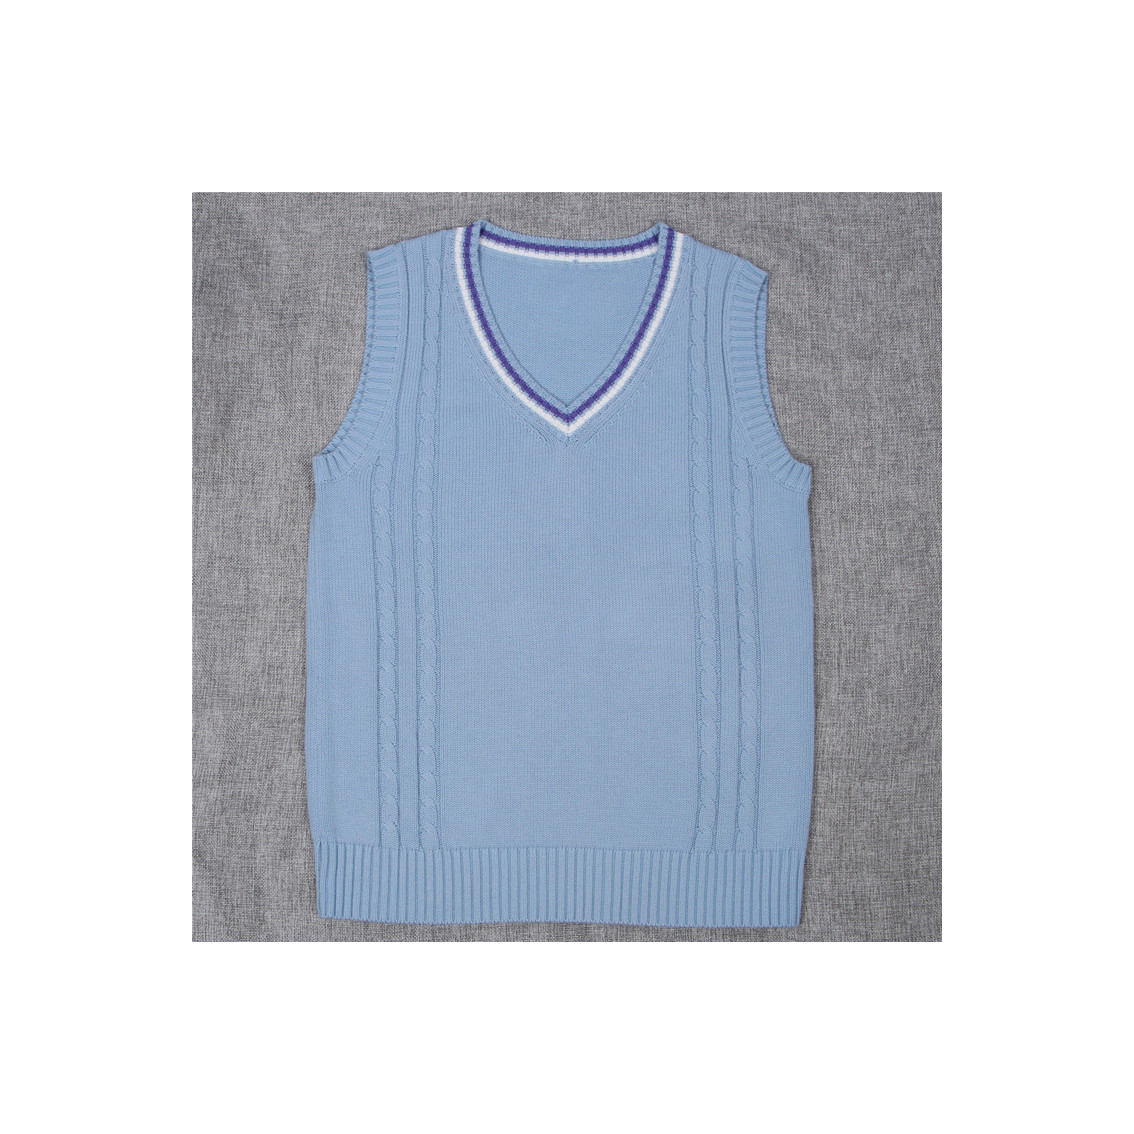 Japanese School Uniform Knitted Vest Women V-Neck Sleeveless Sweater JK Students Pullover blue